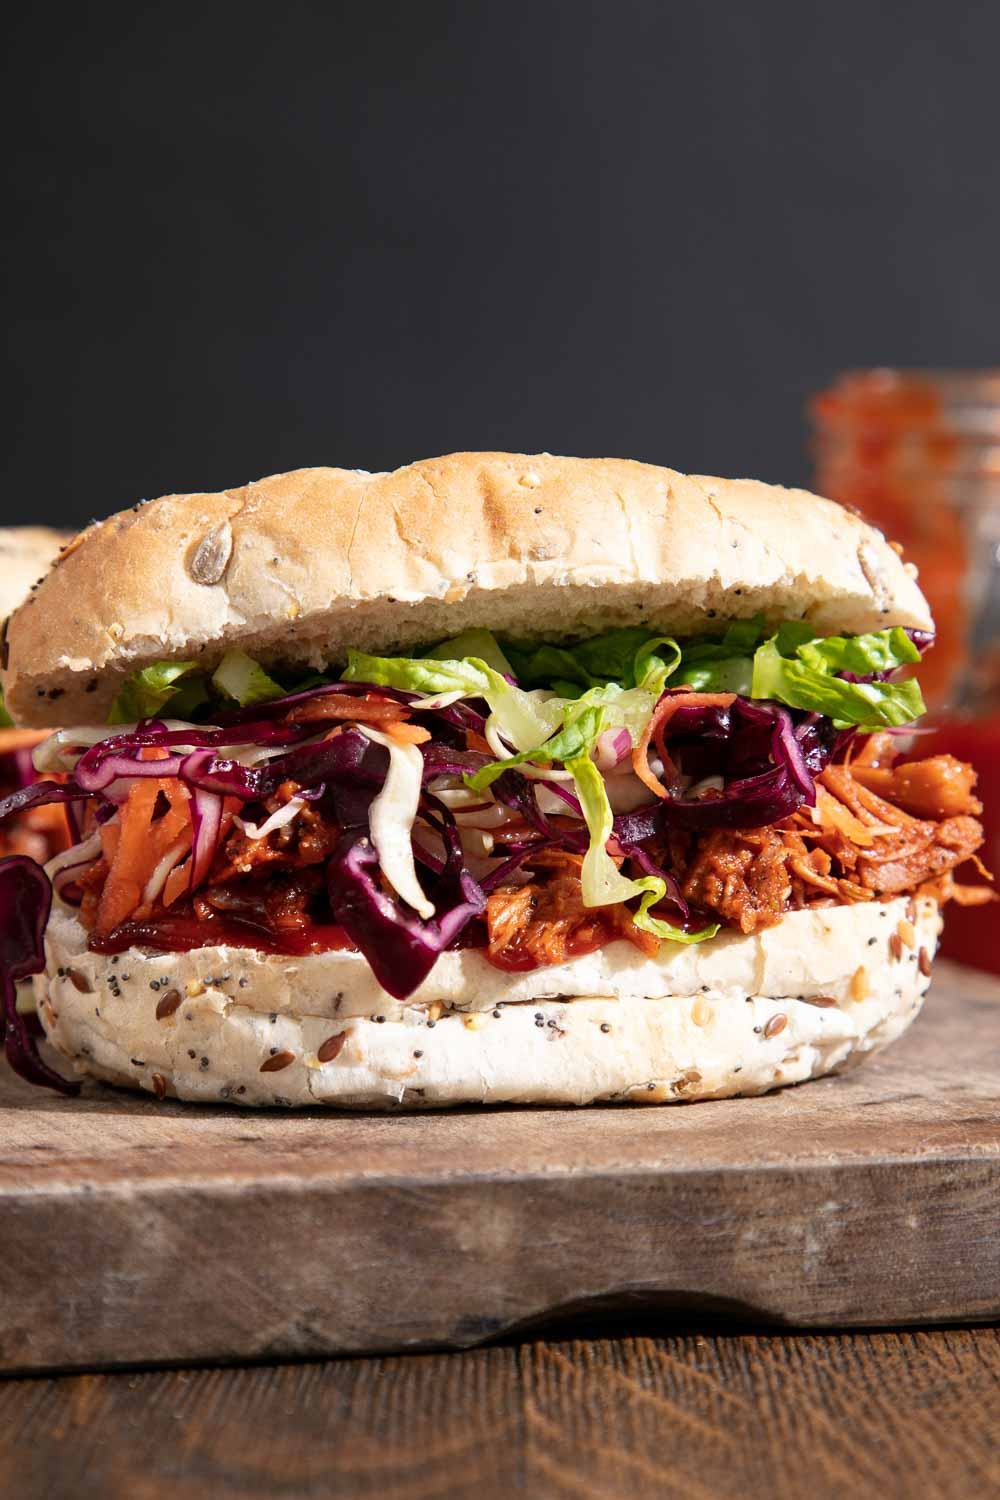 Barbecued jackfruit in a seeded bun with red cabbage coleslaw and green lettuce leaves.